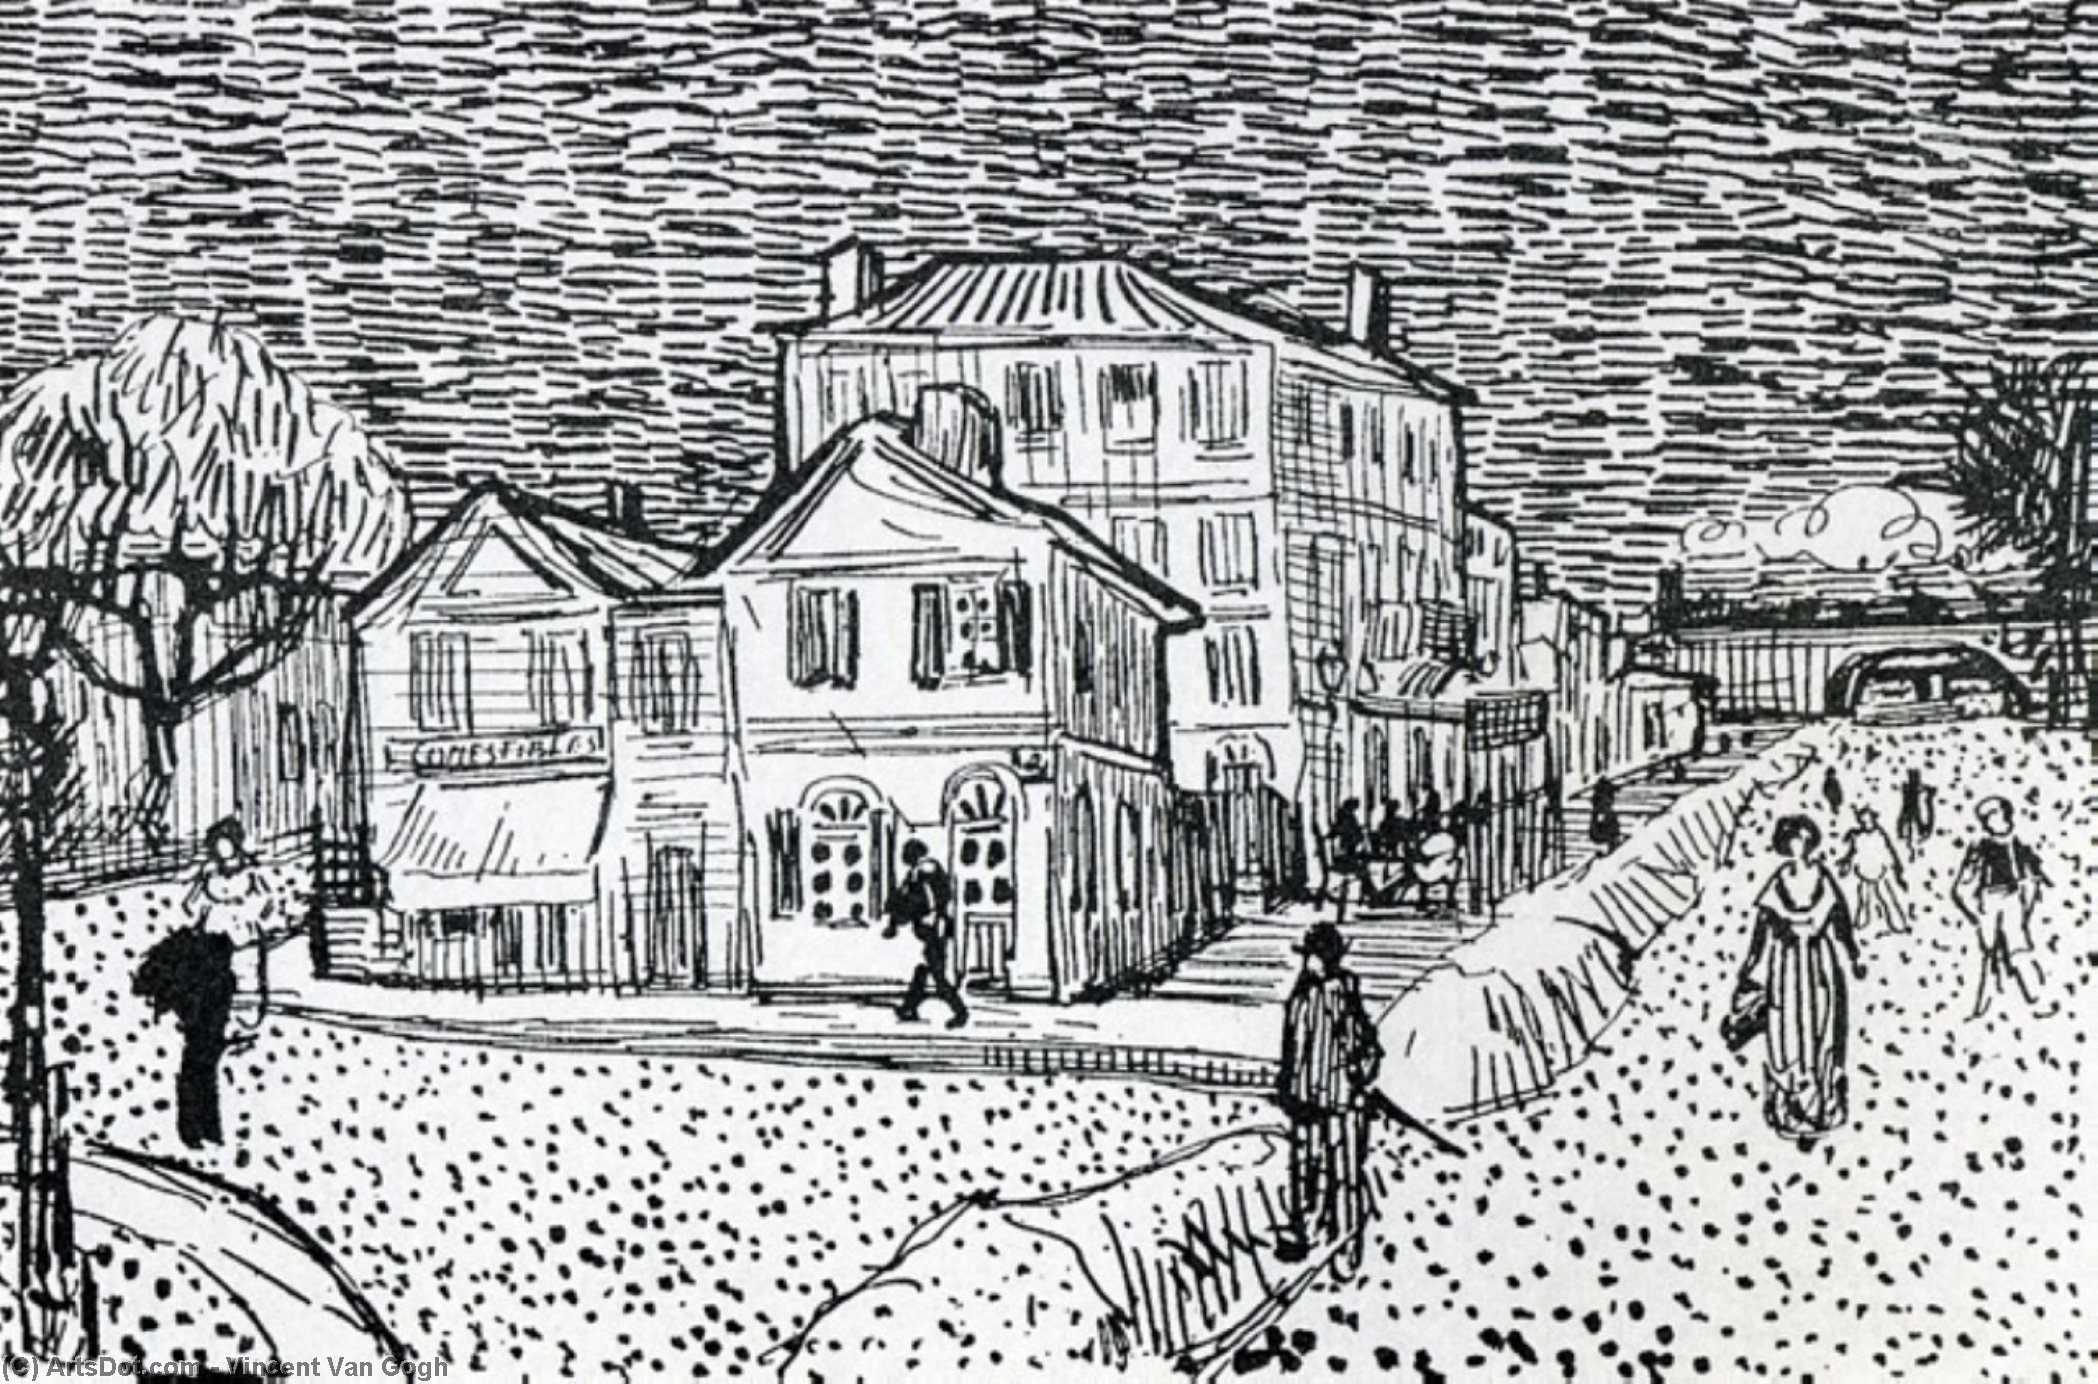 Wikioo.org - The Encyclopedia of Fine Arts - Painting, Artwork by Vincent Van Gogh - The Artist's House in Arles